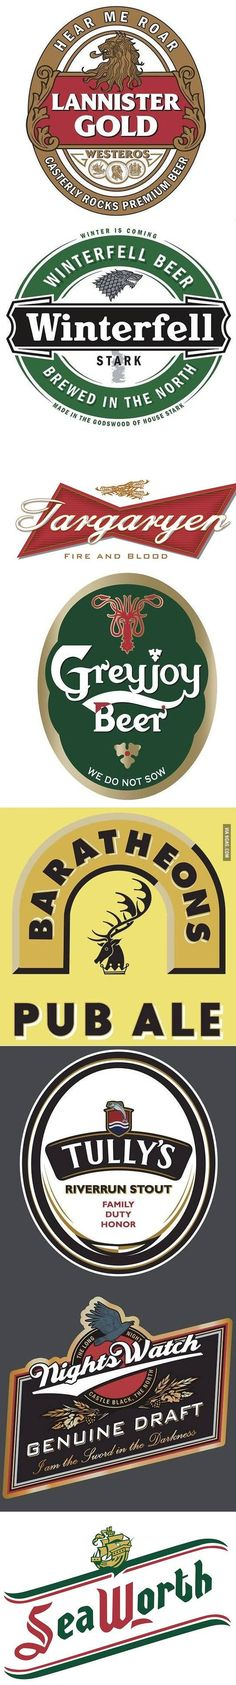 PRINTABLES: Game of Thrones beverage labels..  Medieval Halloween Game of Thrones Gathering Party Theme & Decorating Ideas